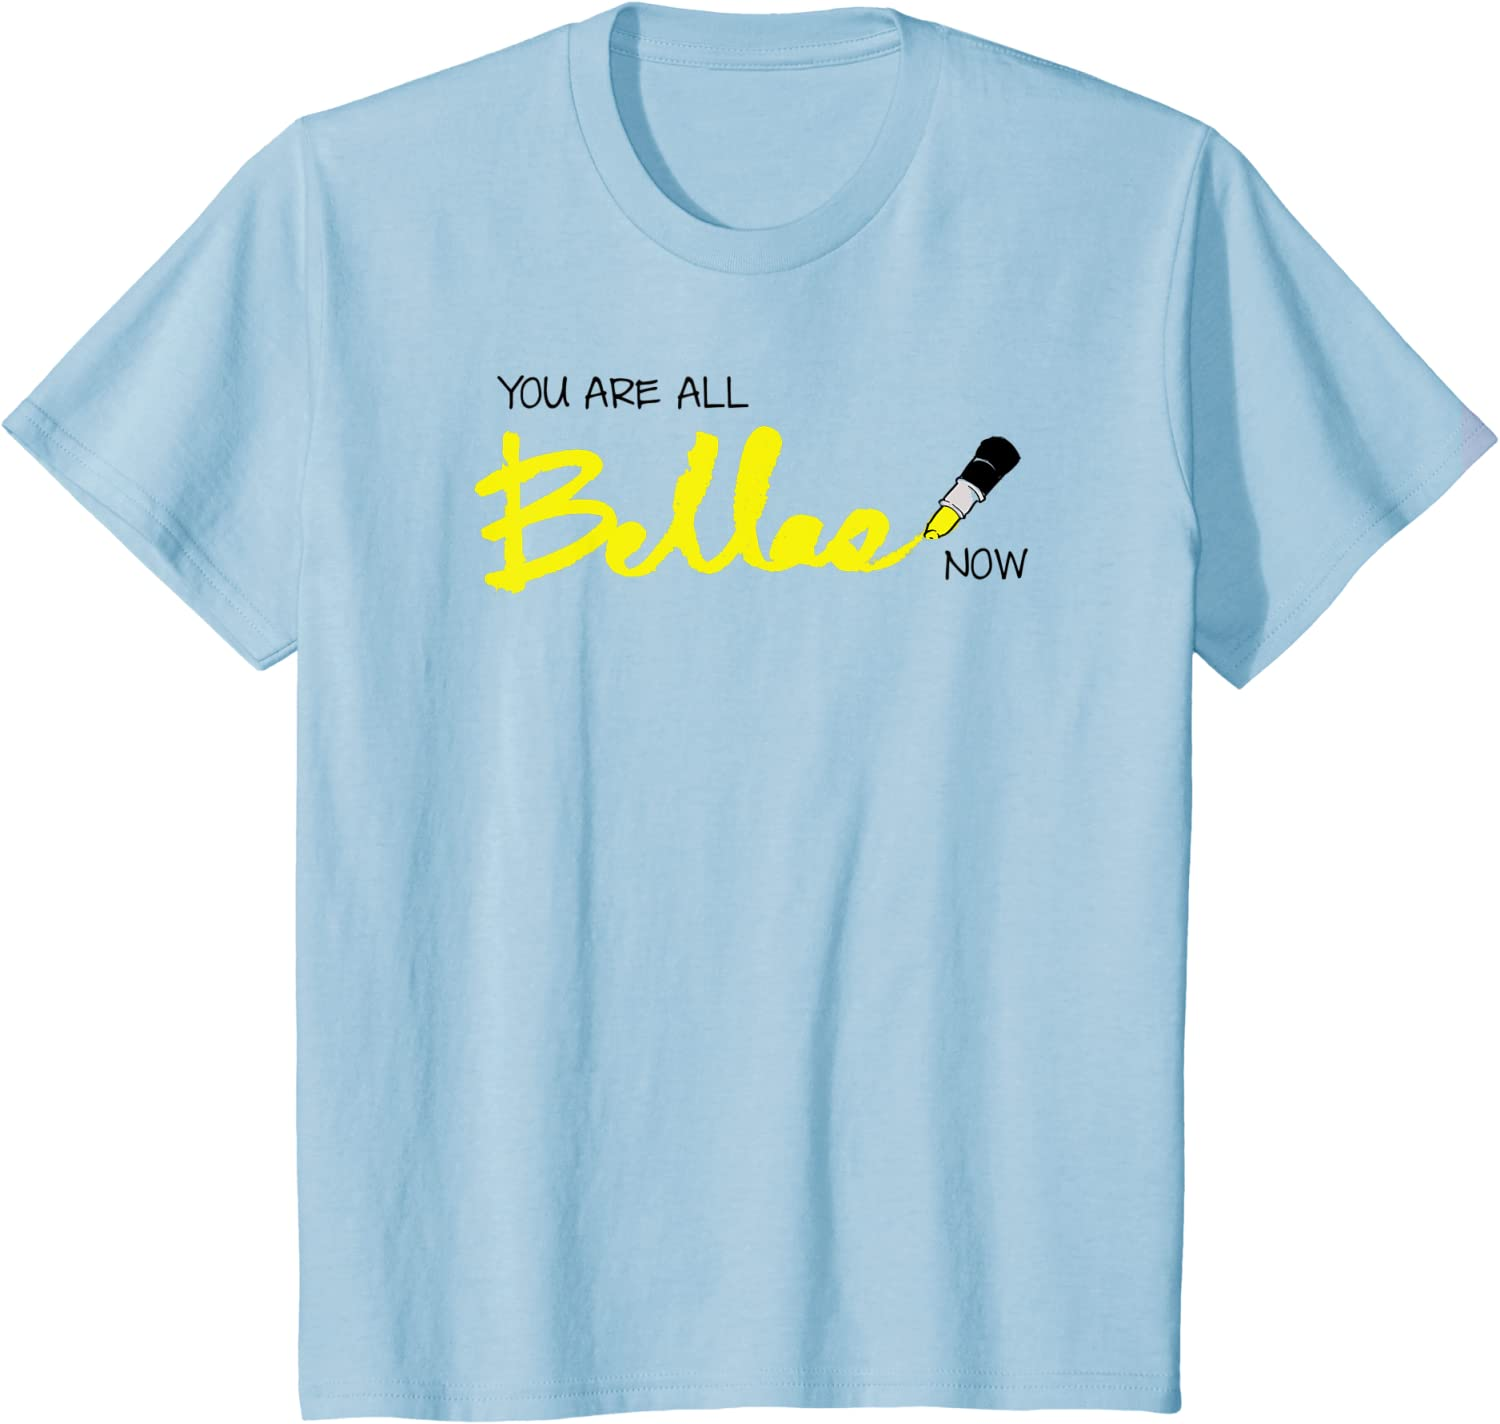 Kids Pitch Perfect - You Are All Bellas Now Yellow T-shirt